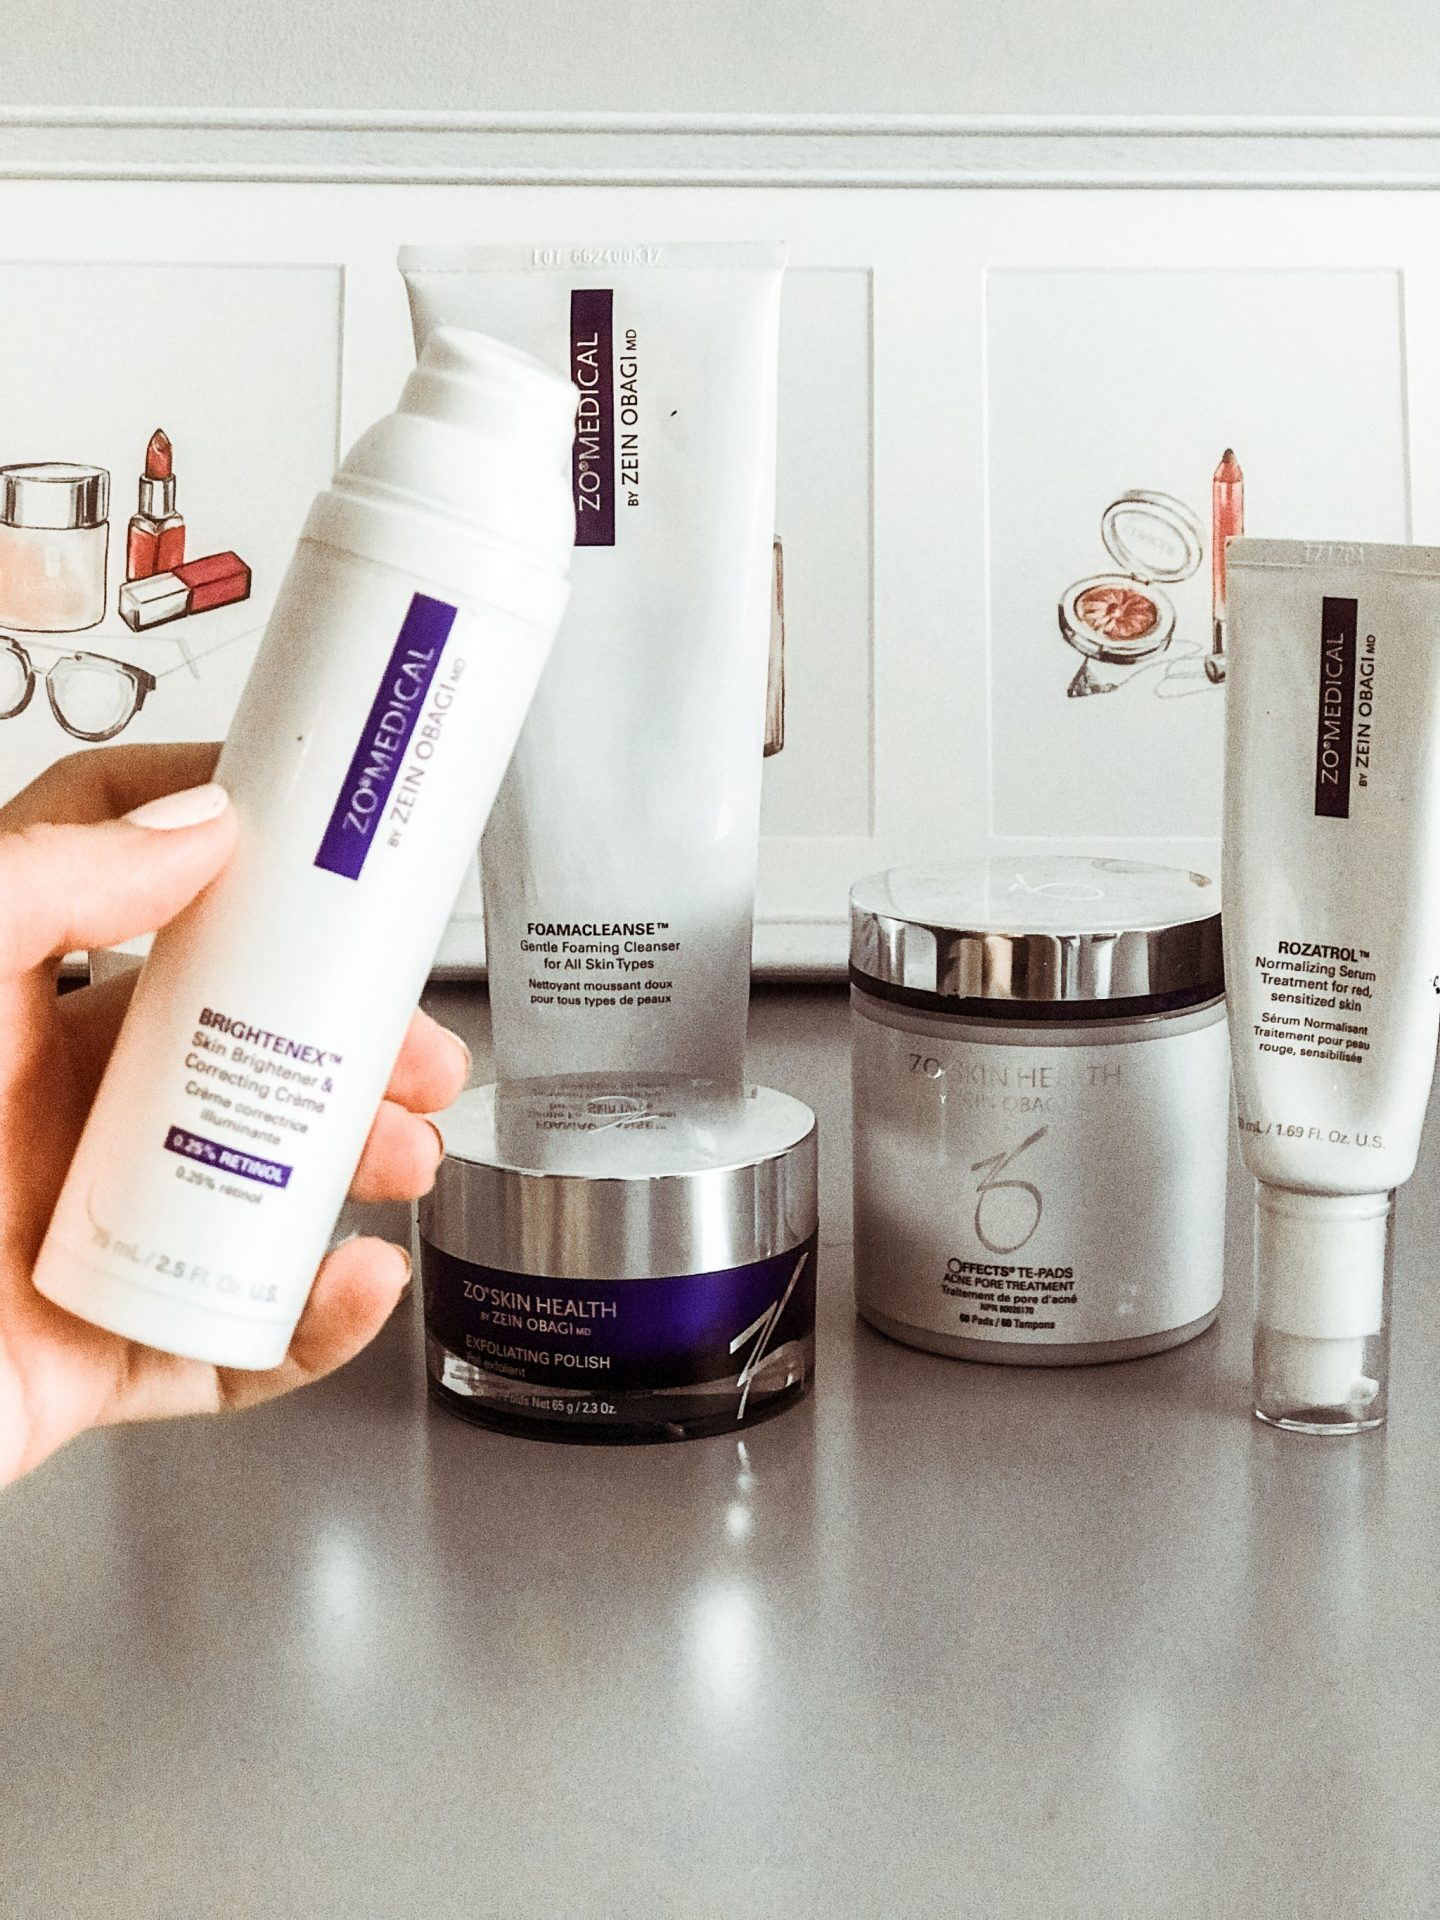 ZO Skincare products - Skincare Regimen for Mature Acne-Prone Skin